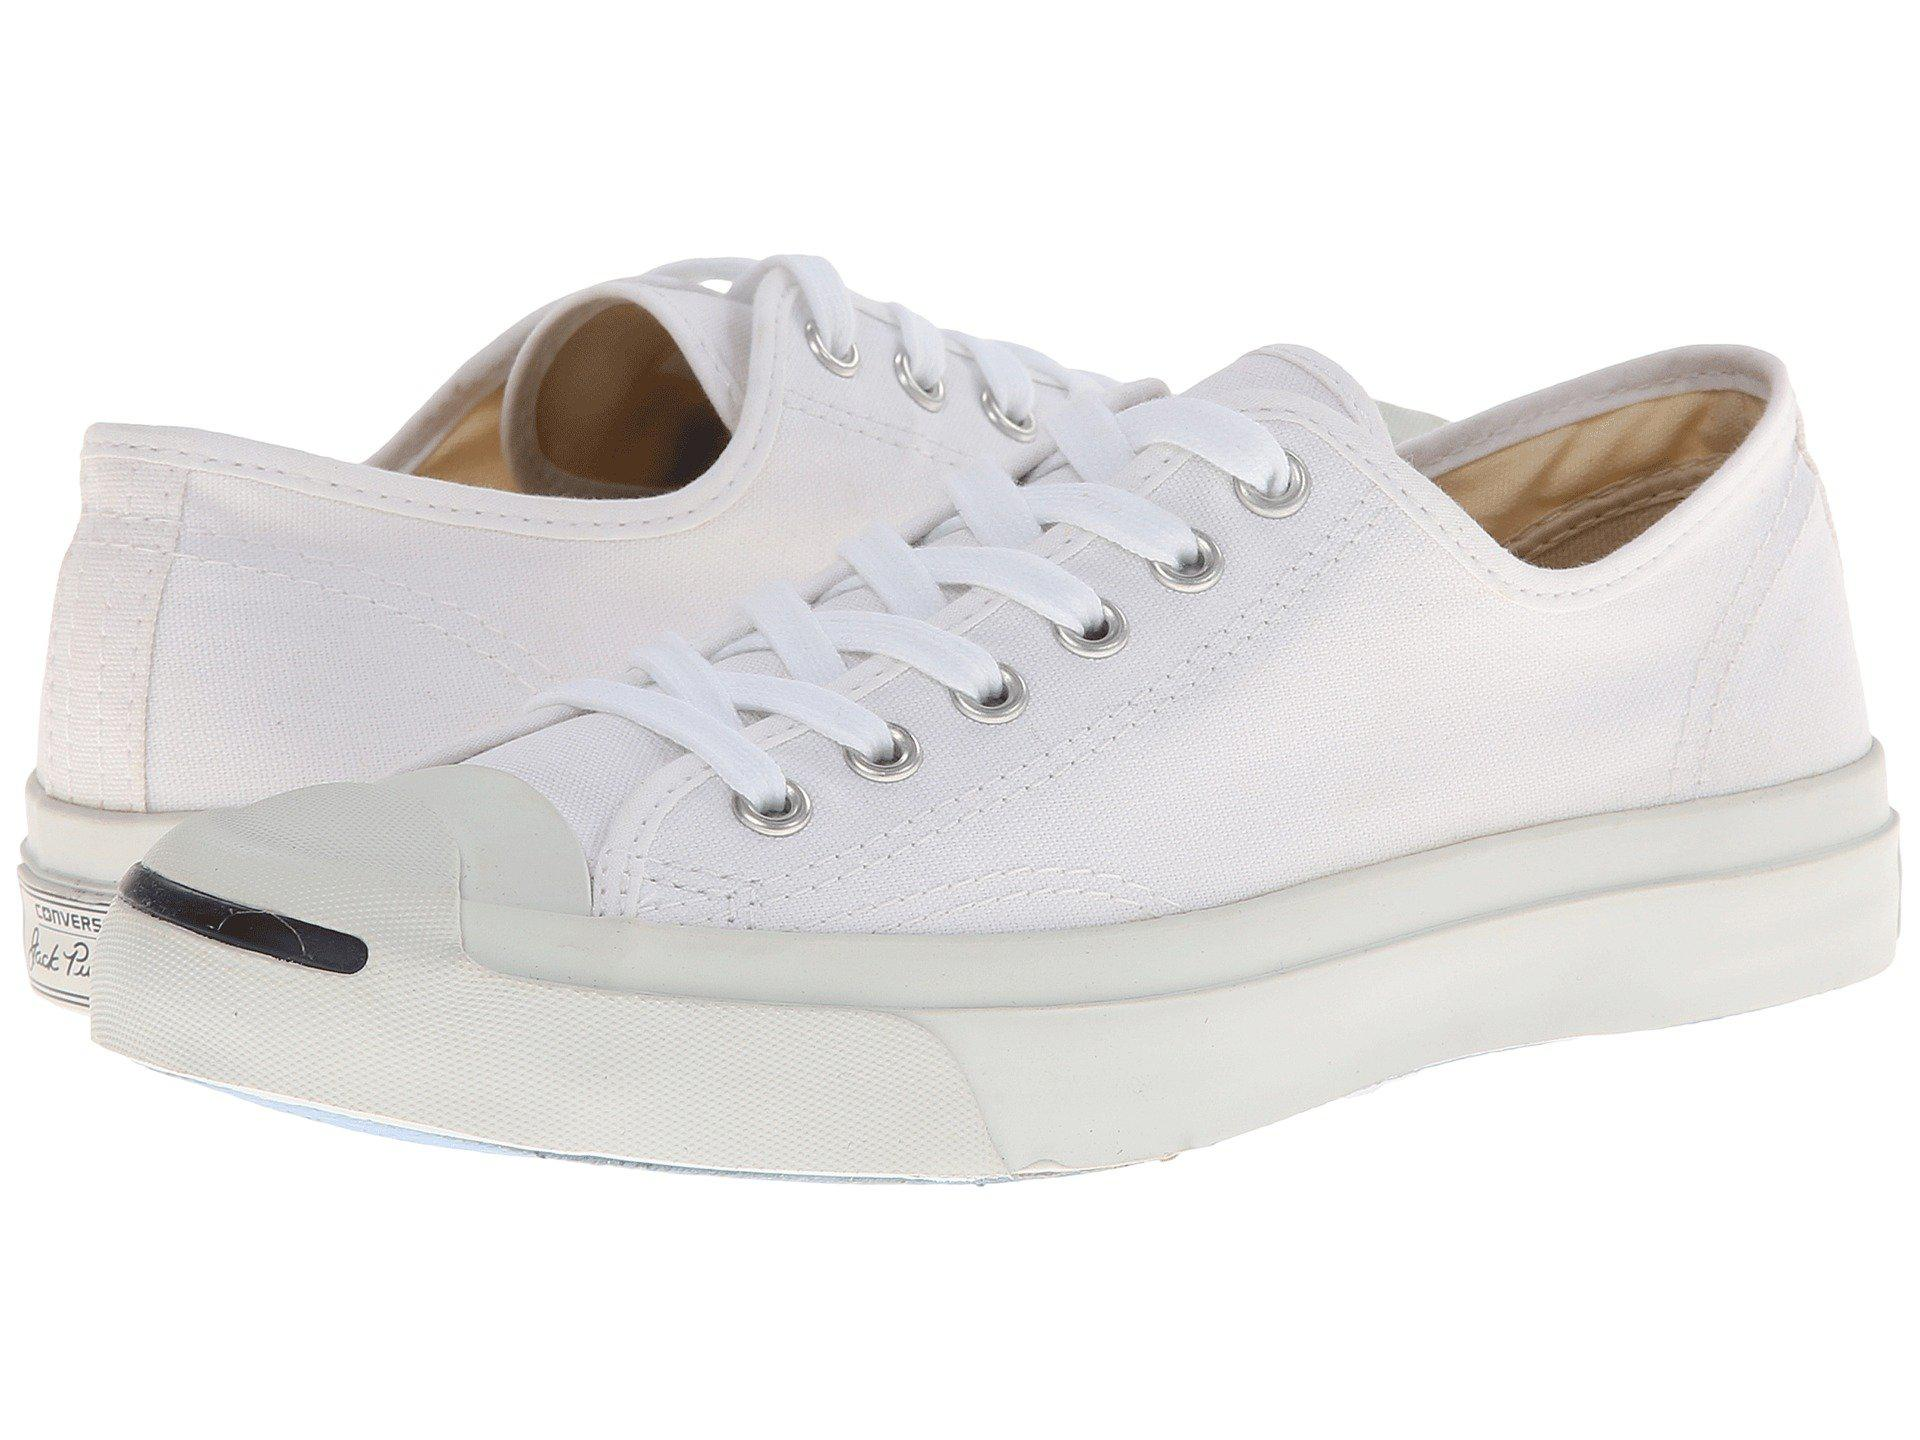 a6dcf3c335fa Lyst - Converse Jack Purcell(r) Cp Canvas Low Top (white white ...